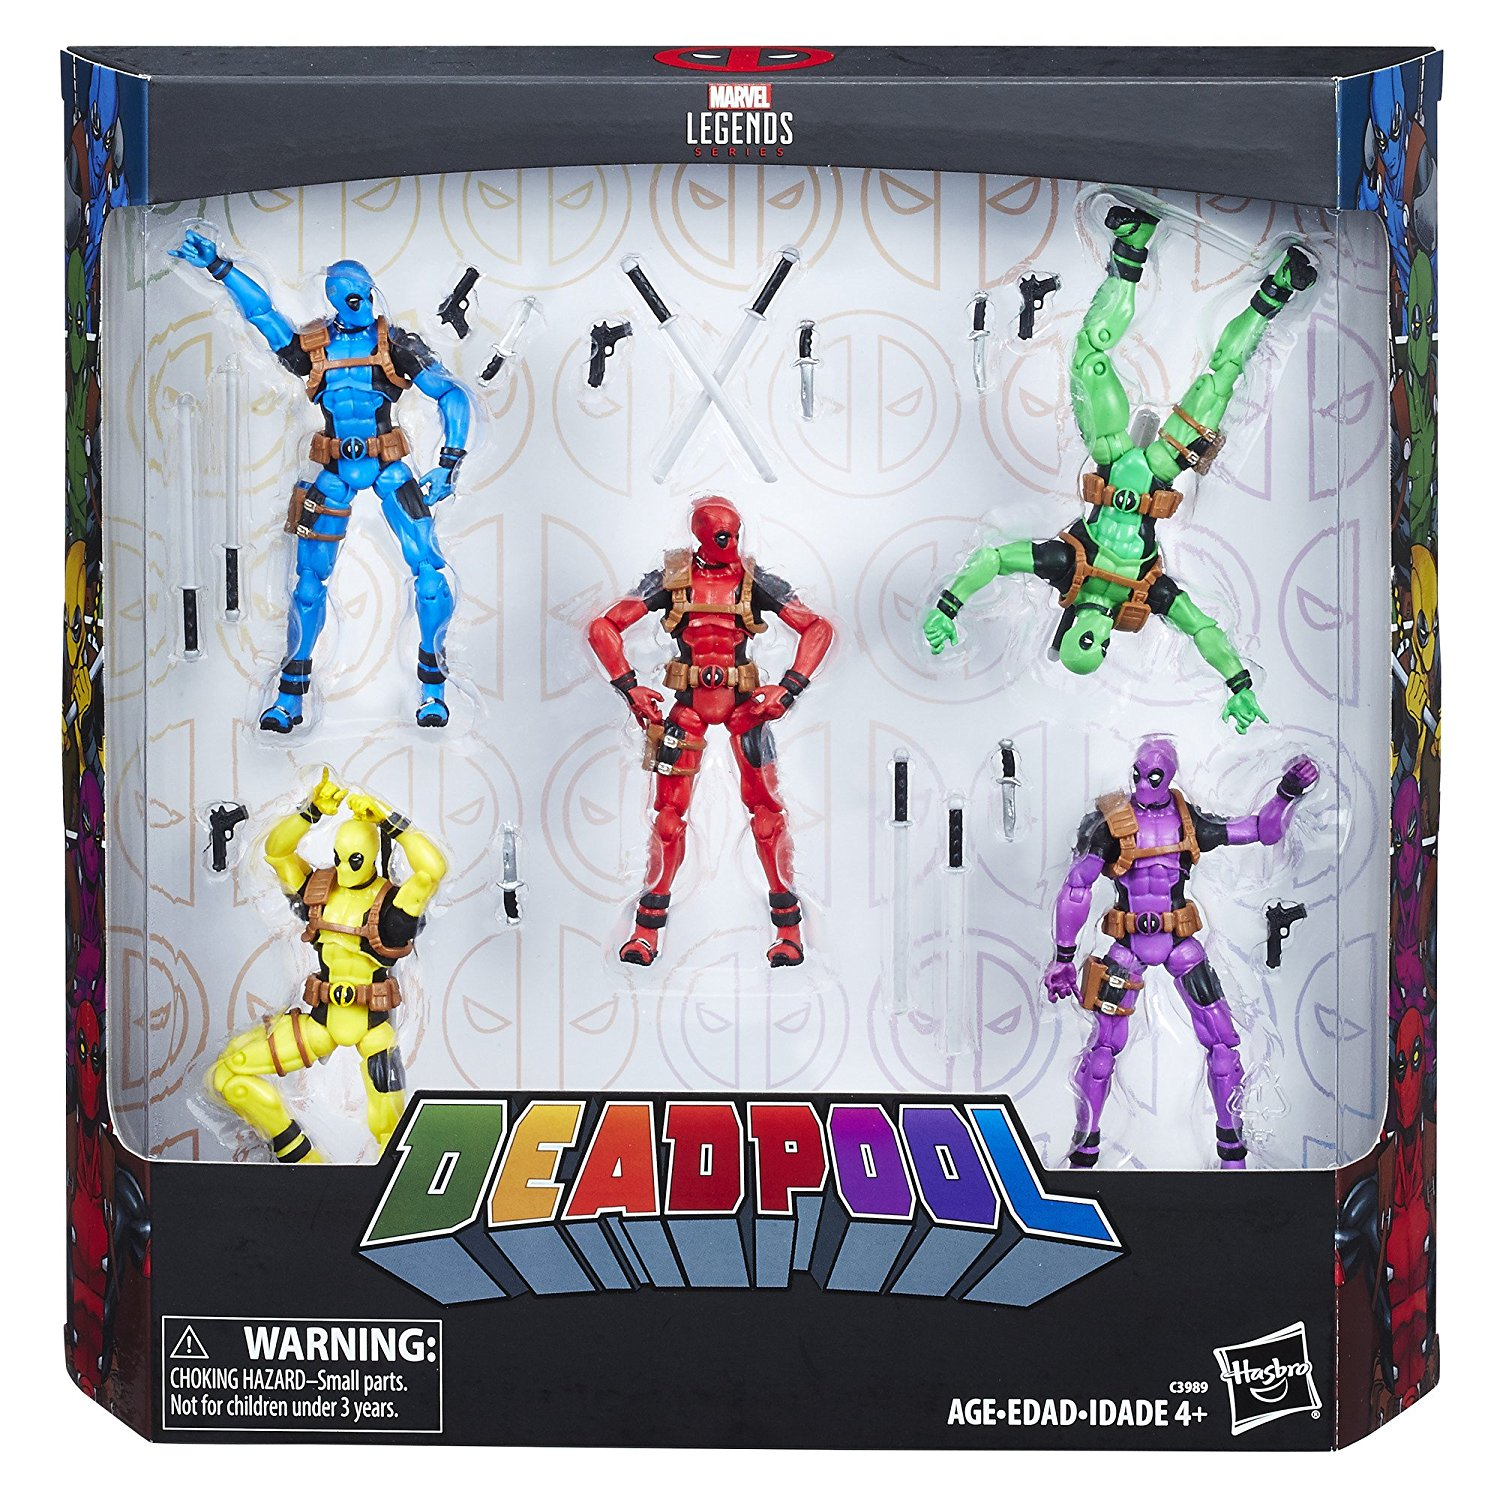 Entertainment Earth Daily Deal – Marvel Legends Deadpool's Rainbow Squad 5-Pack Now 60% Off